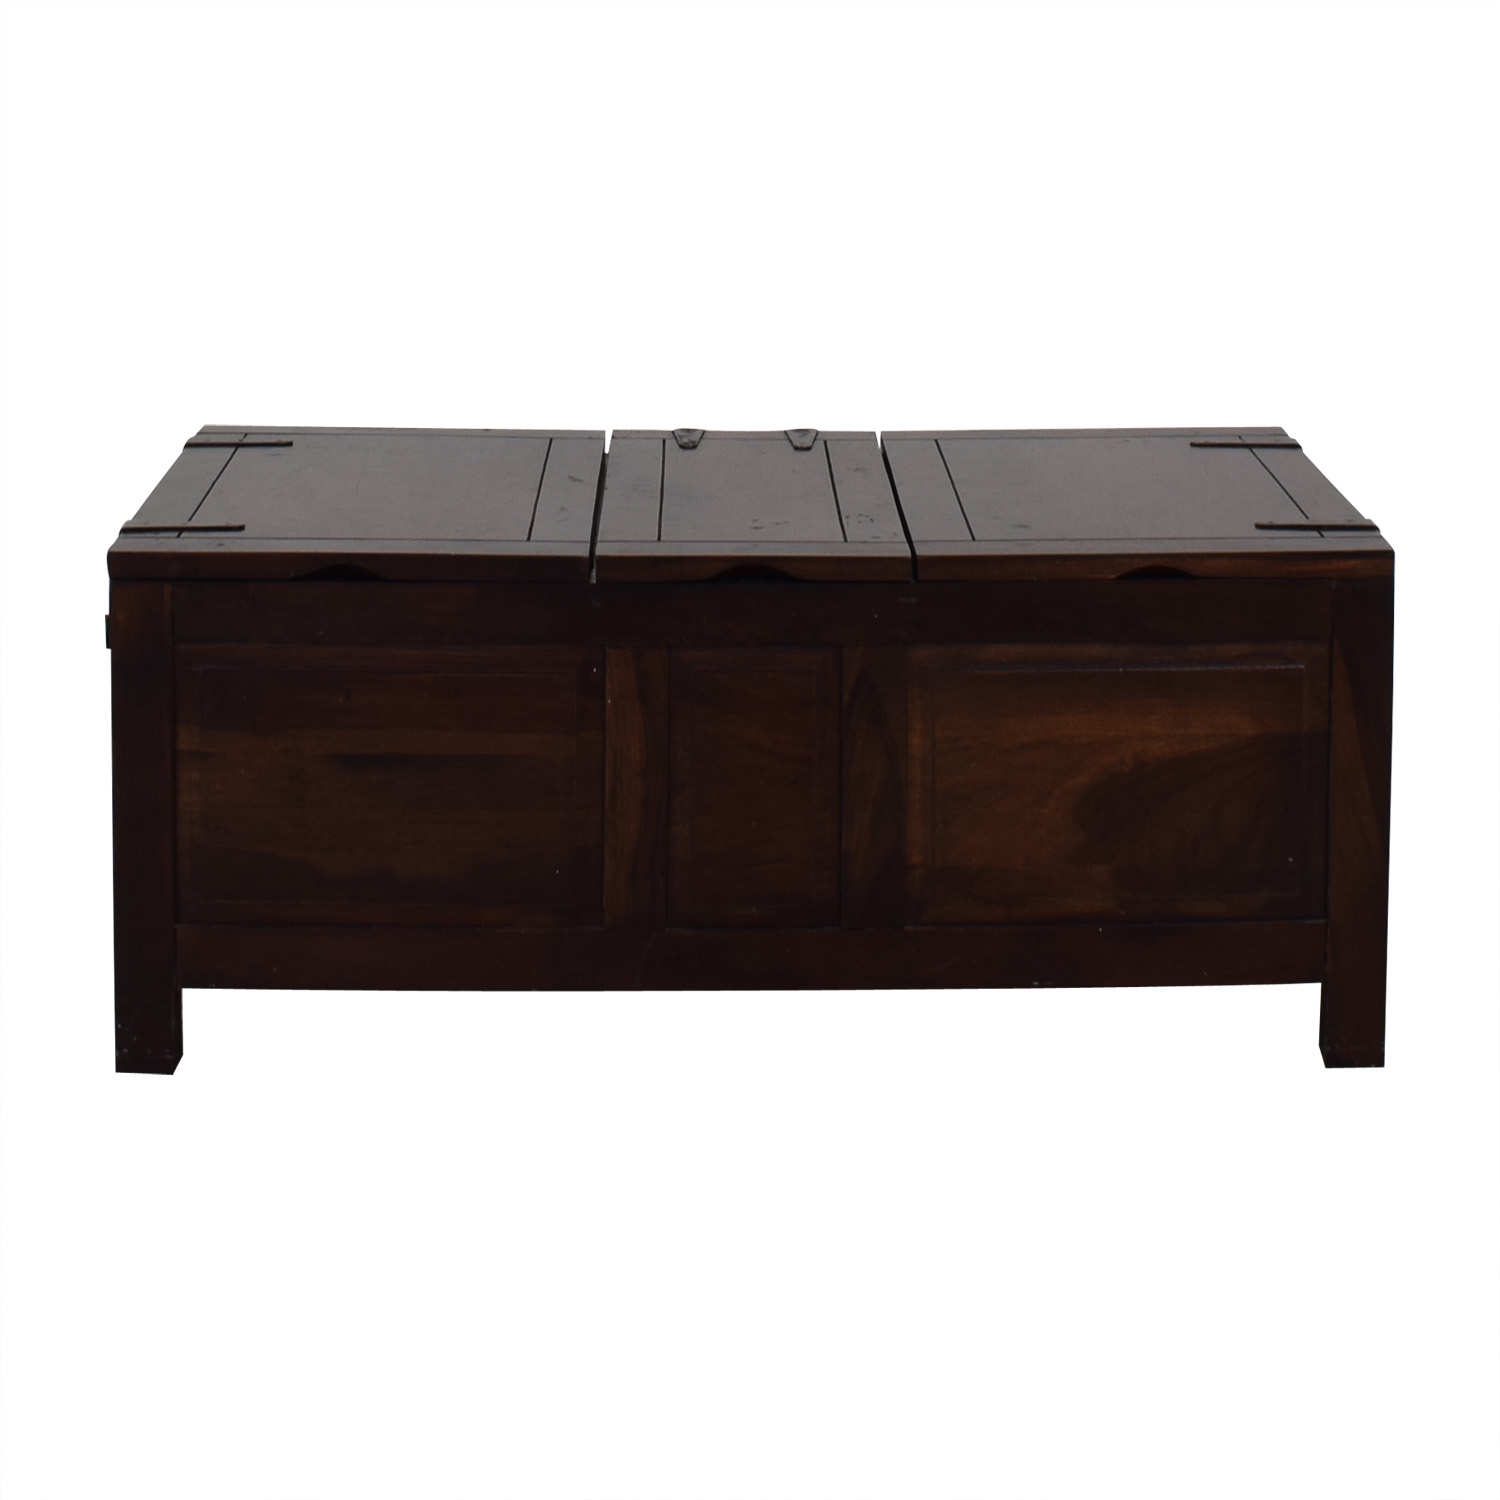 buy Crate & Barrel Coffee Table with Storage Crate & Barrel Coffee Tables